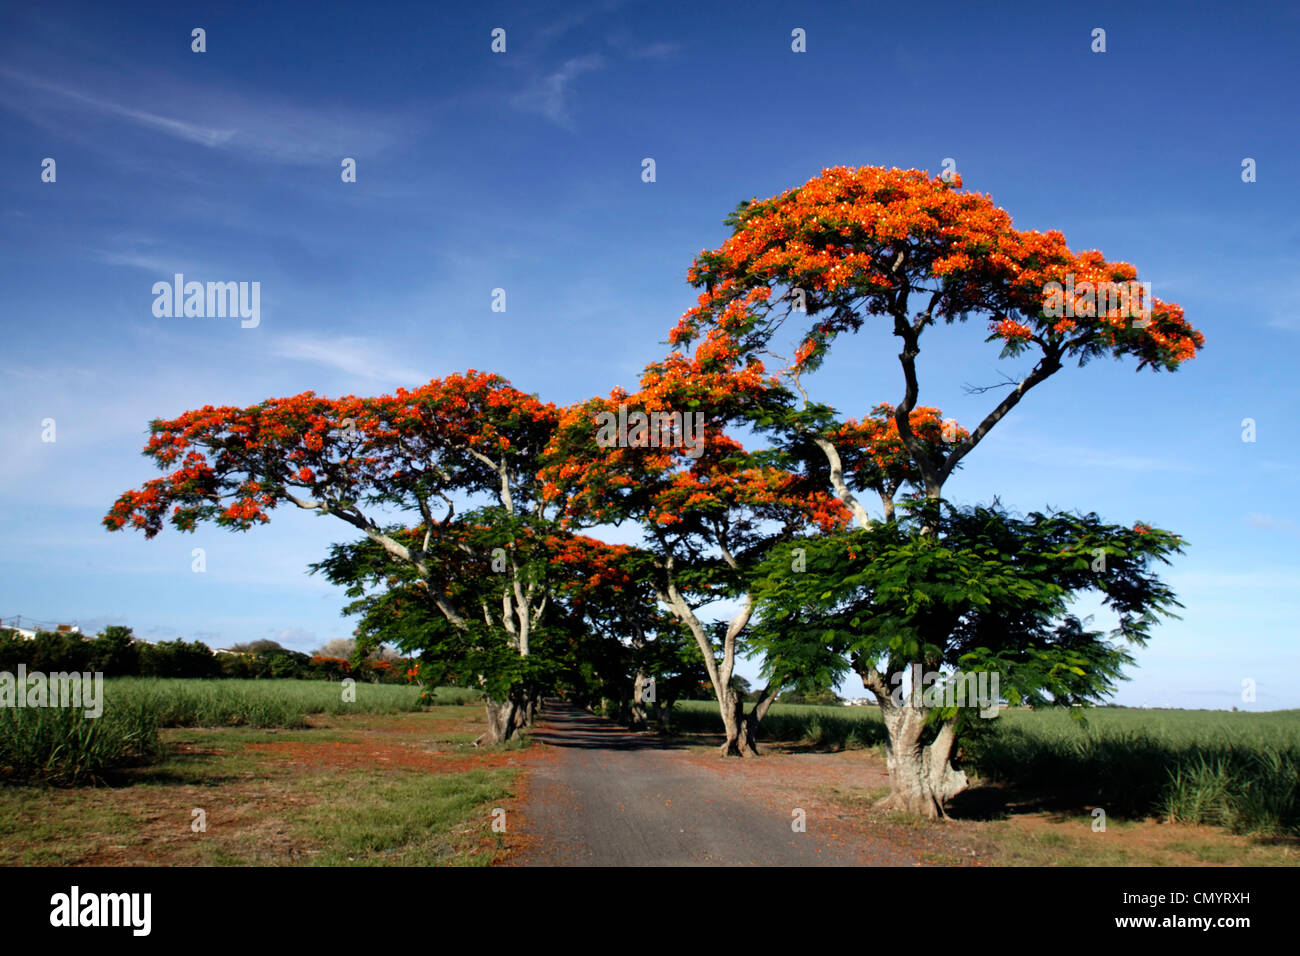 Flame Tree, Flamboyant, Royal Poinciana, lonely street, nobody, Mauritius, Africa - Stock Image